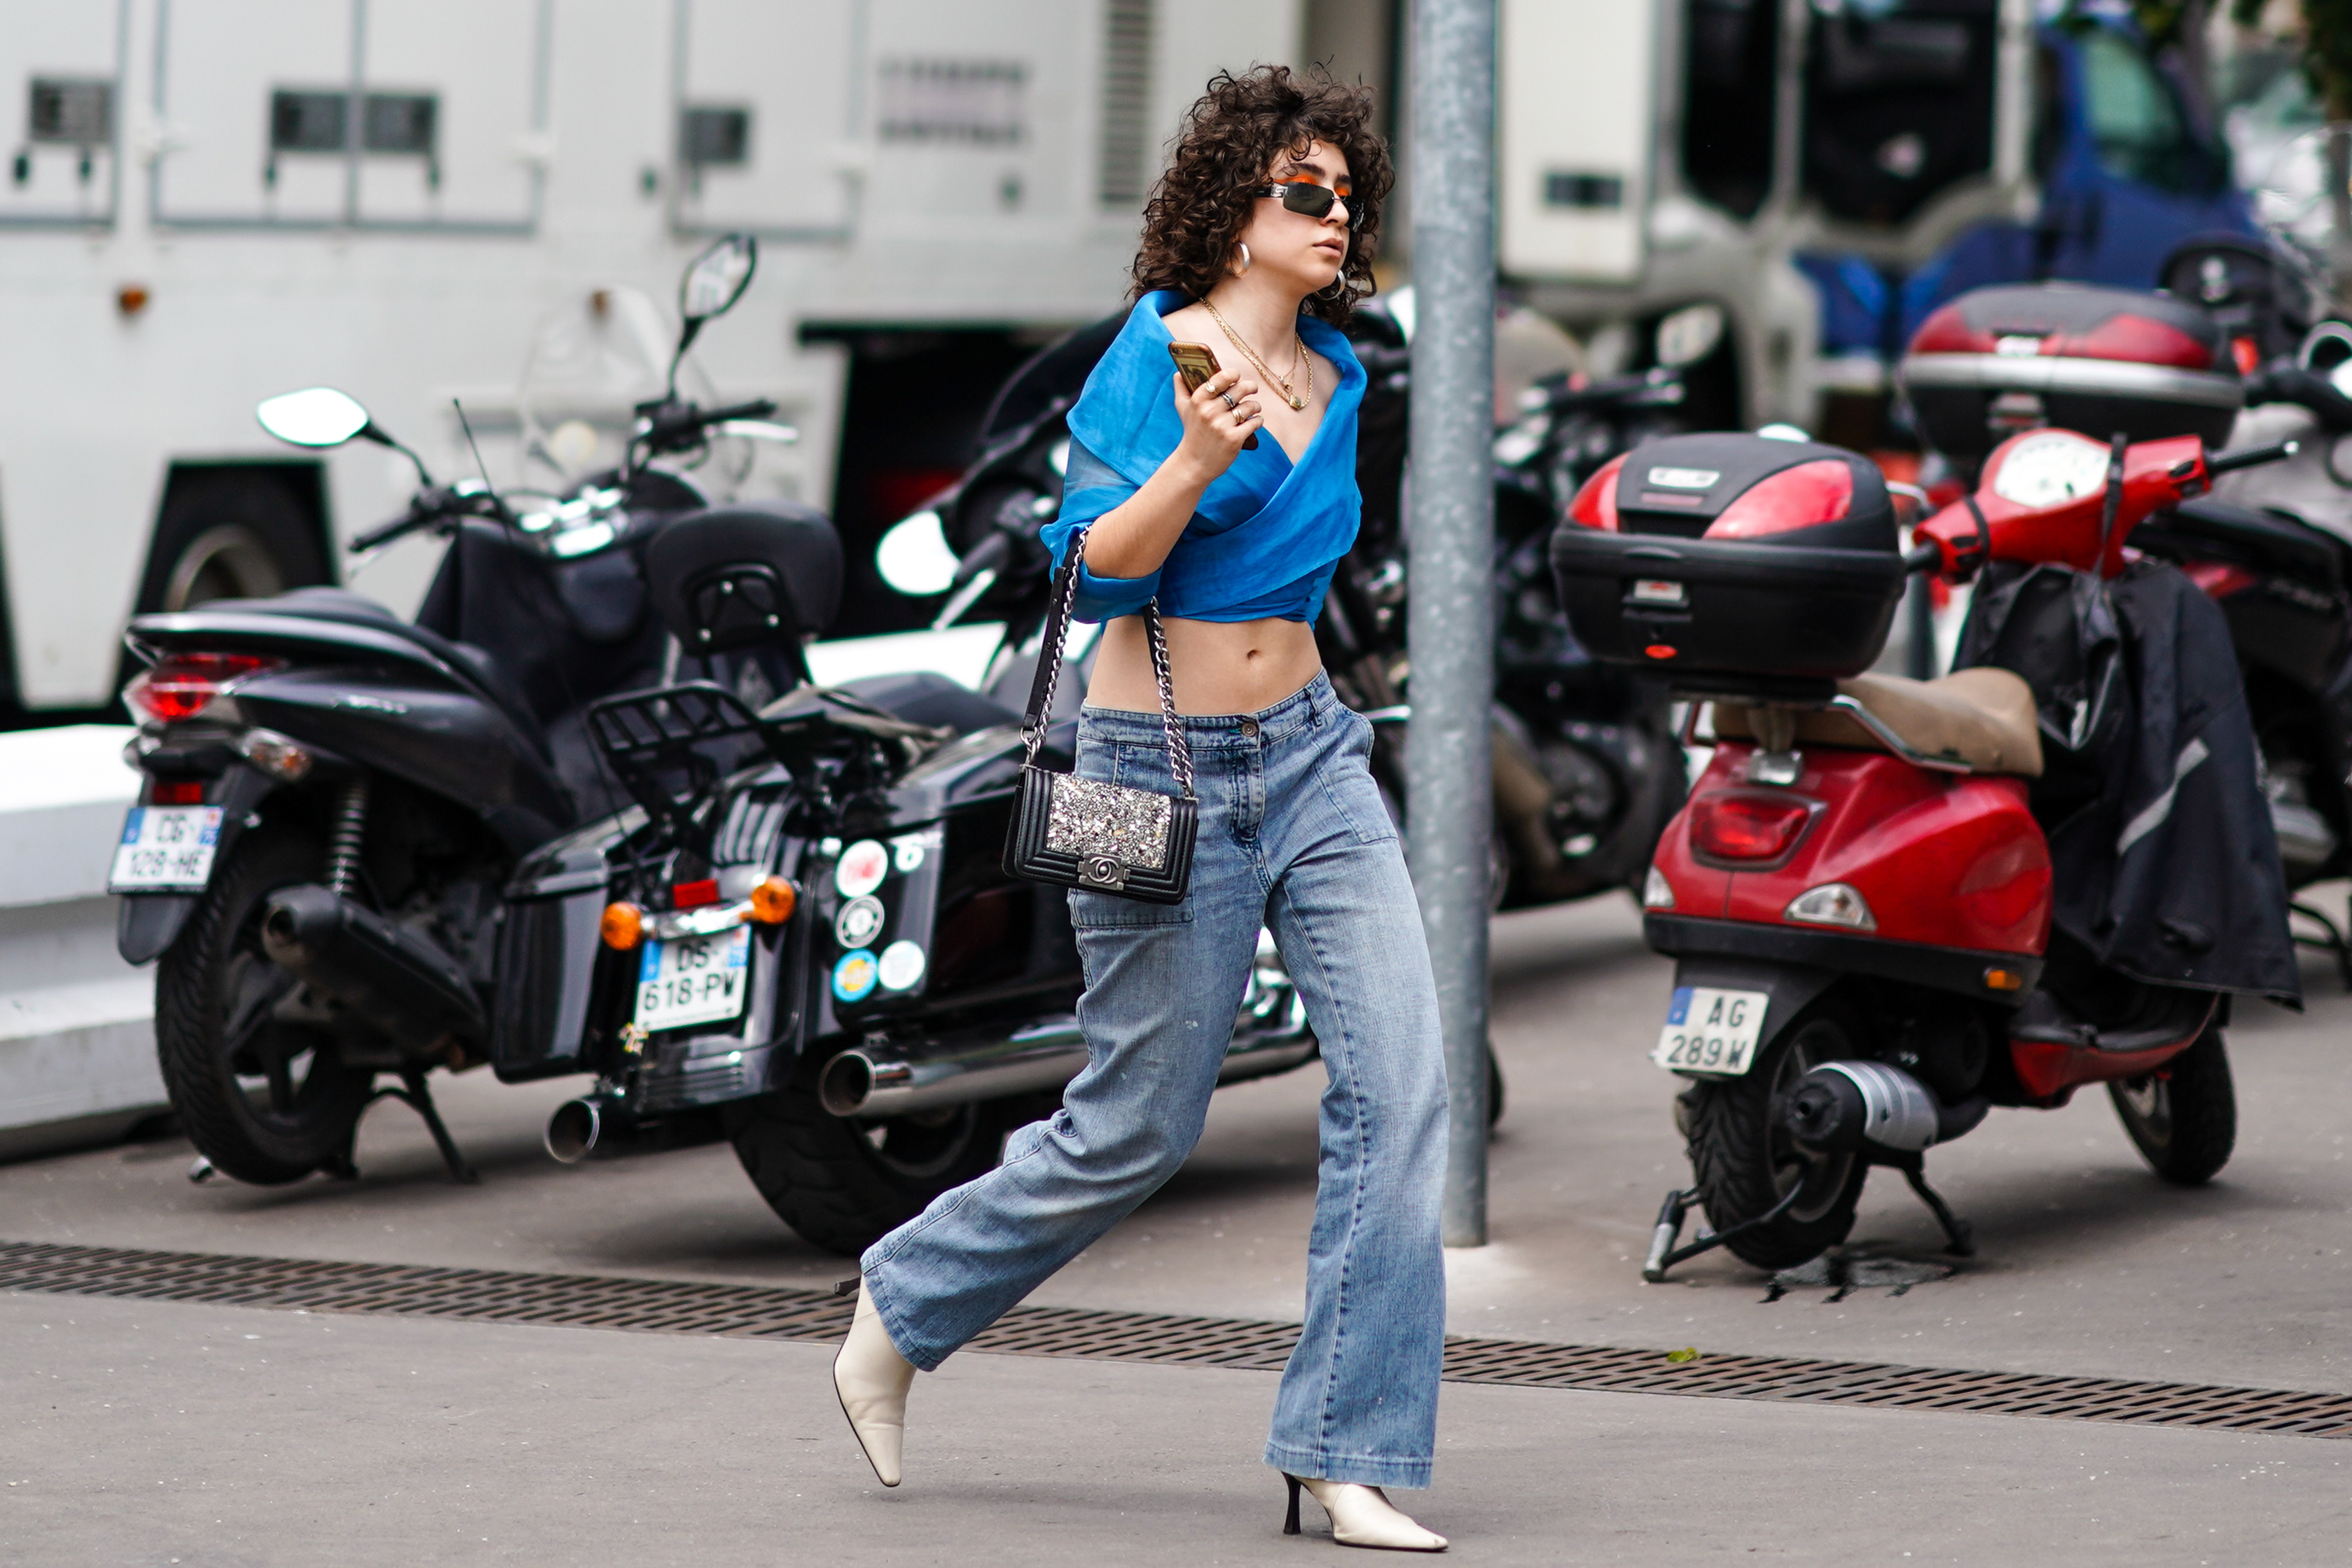 A woman wearing low-rise jeans and a crop top while walking down the street.